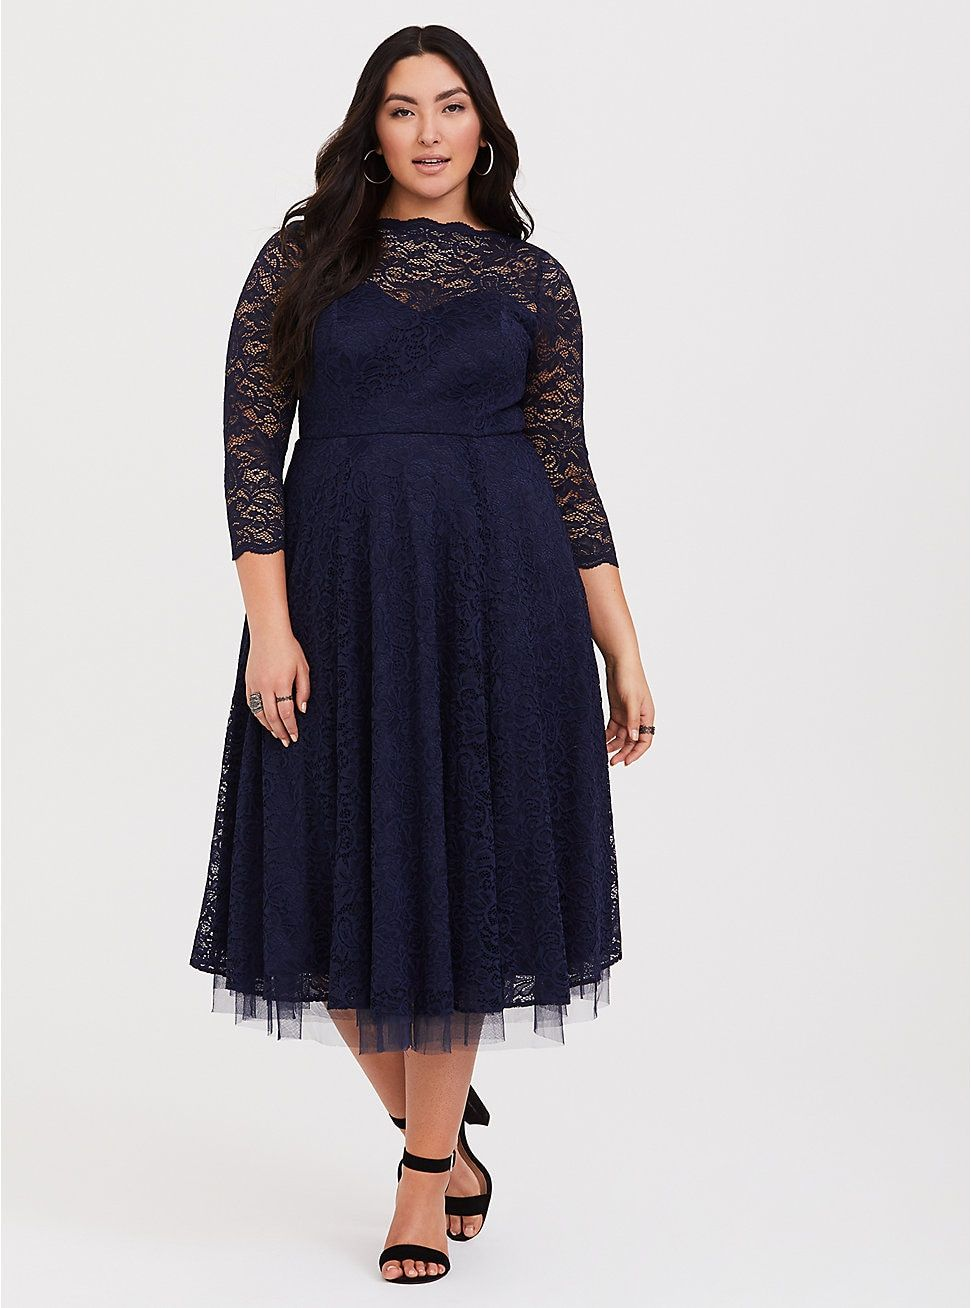 278036dee9d Plus Size Special Occasion Navy Lace Midi Dress